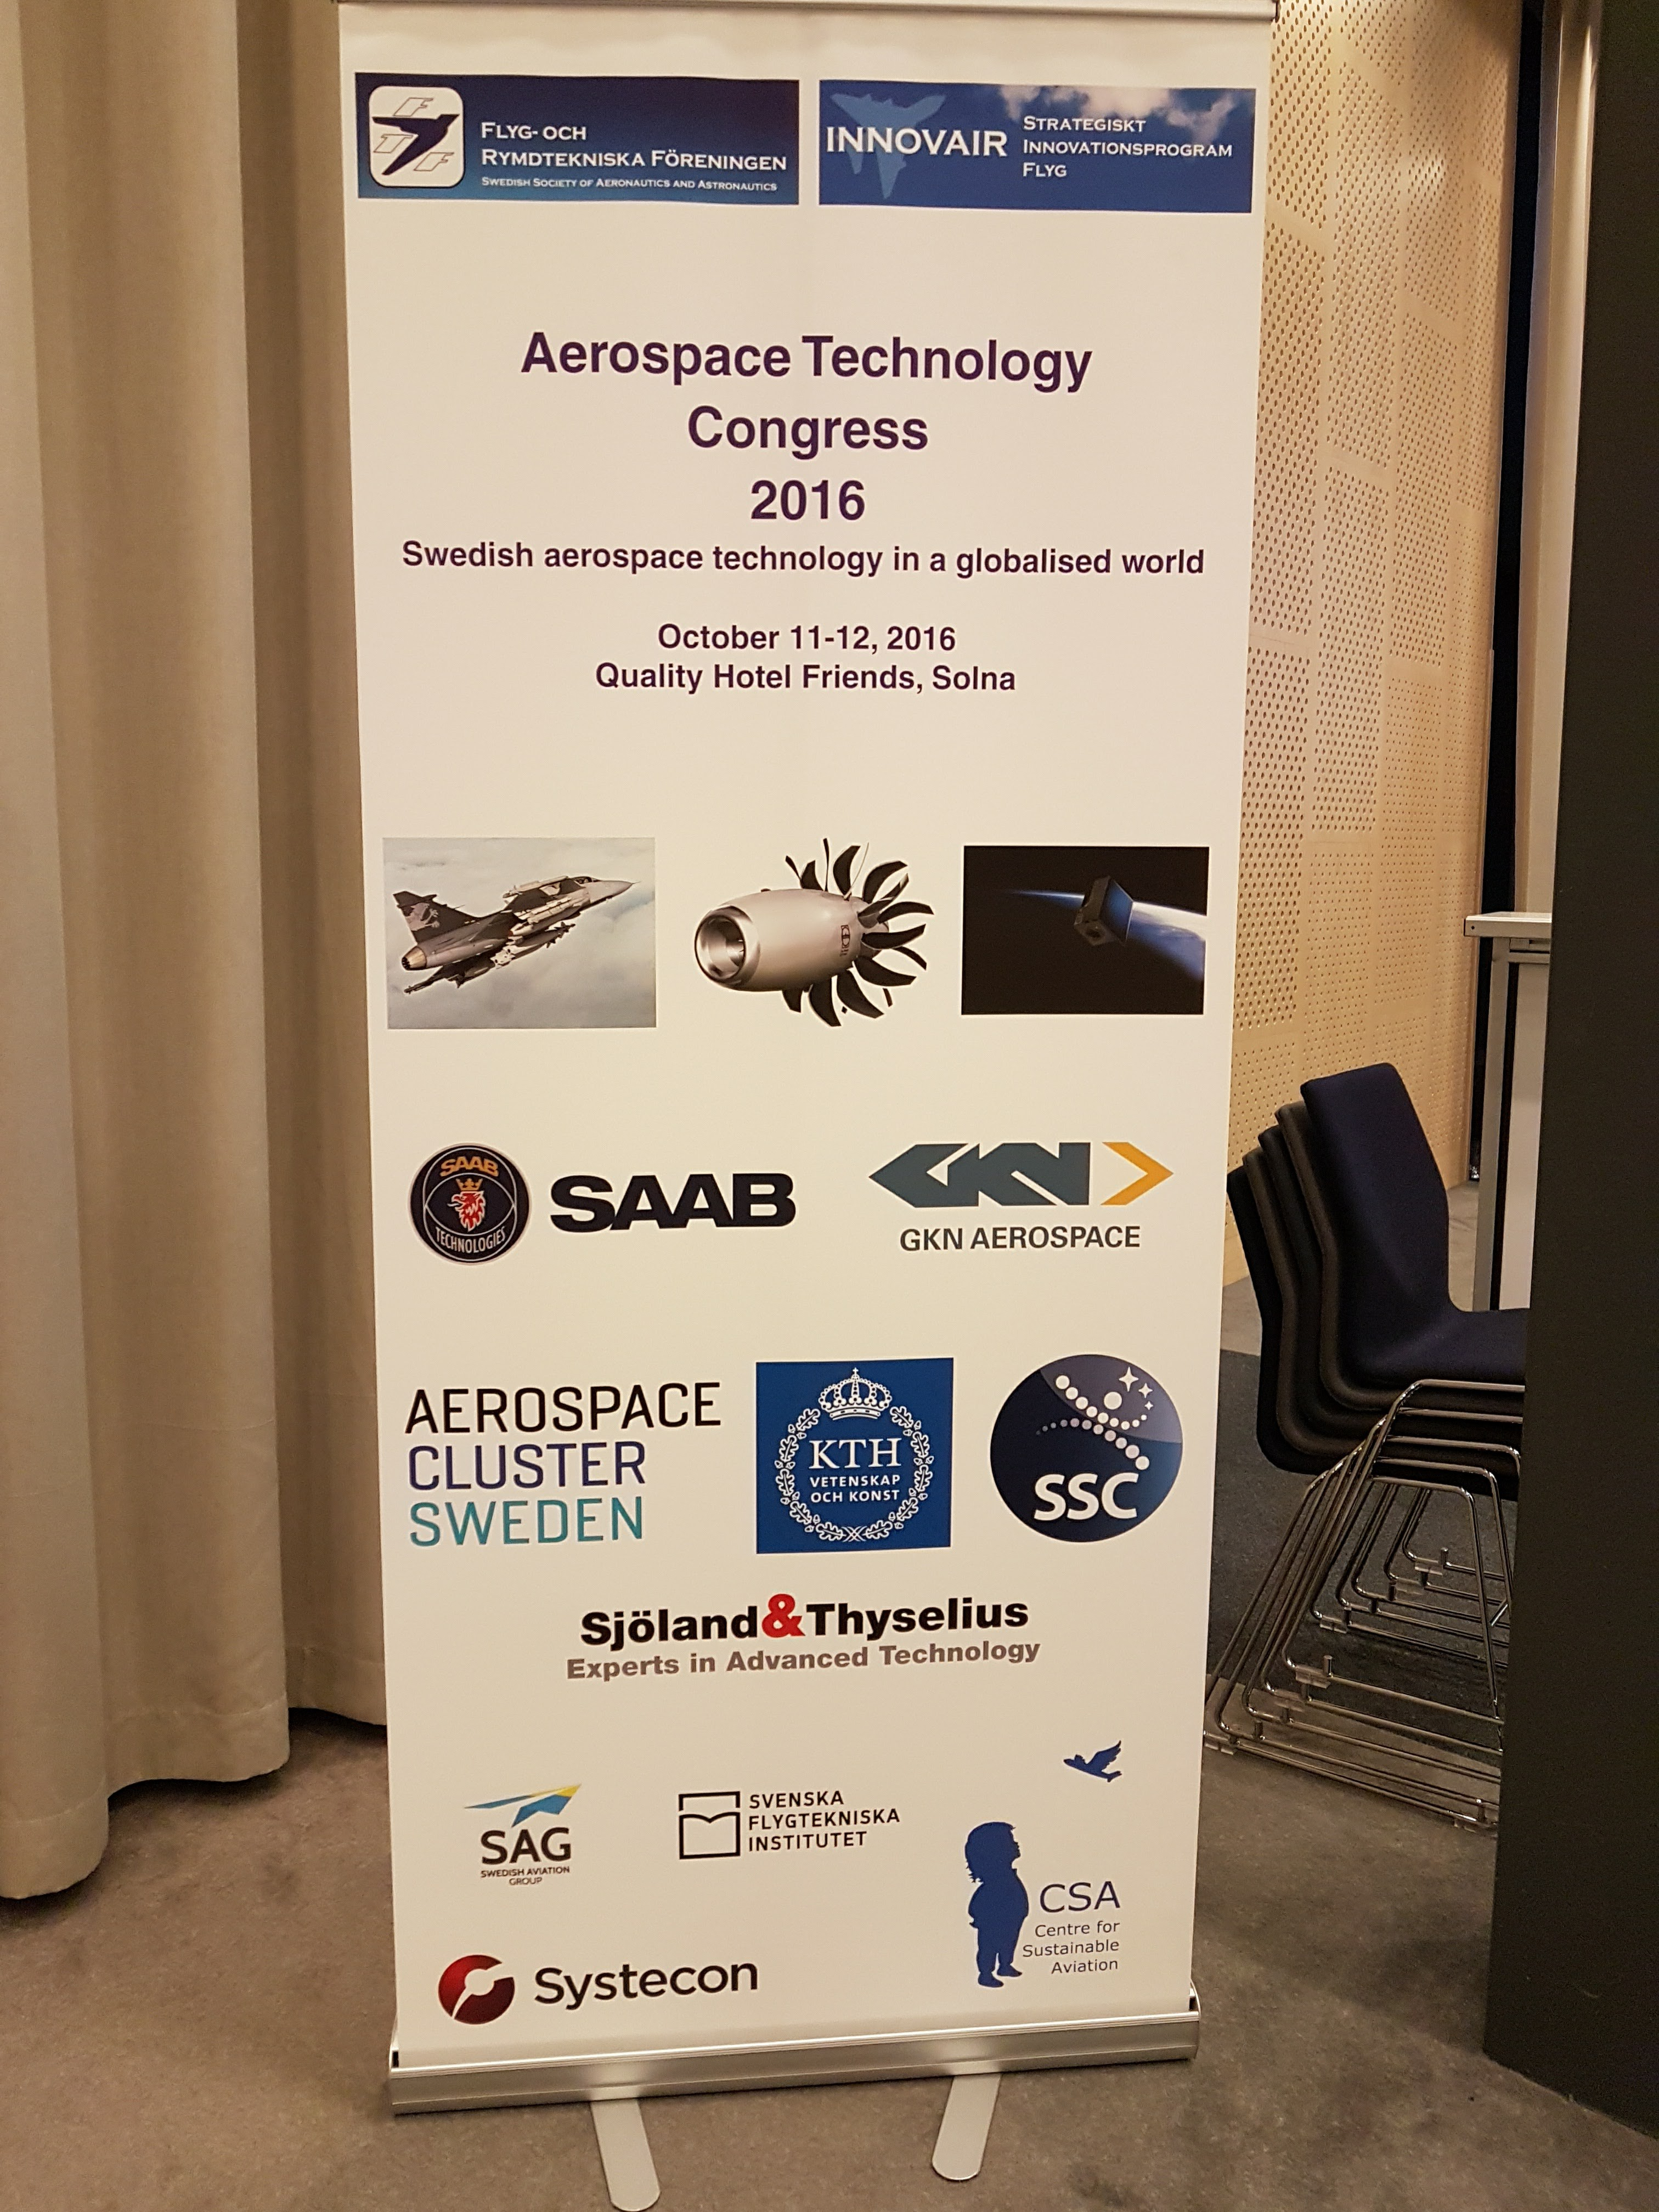 Aerospace Technology Congress